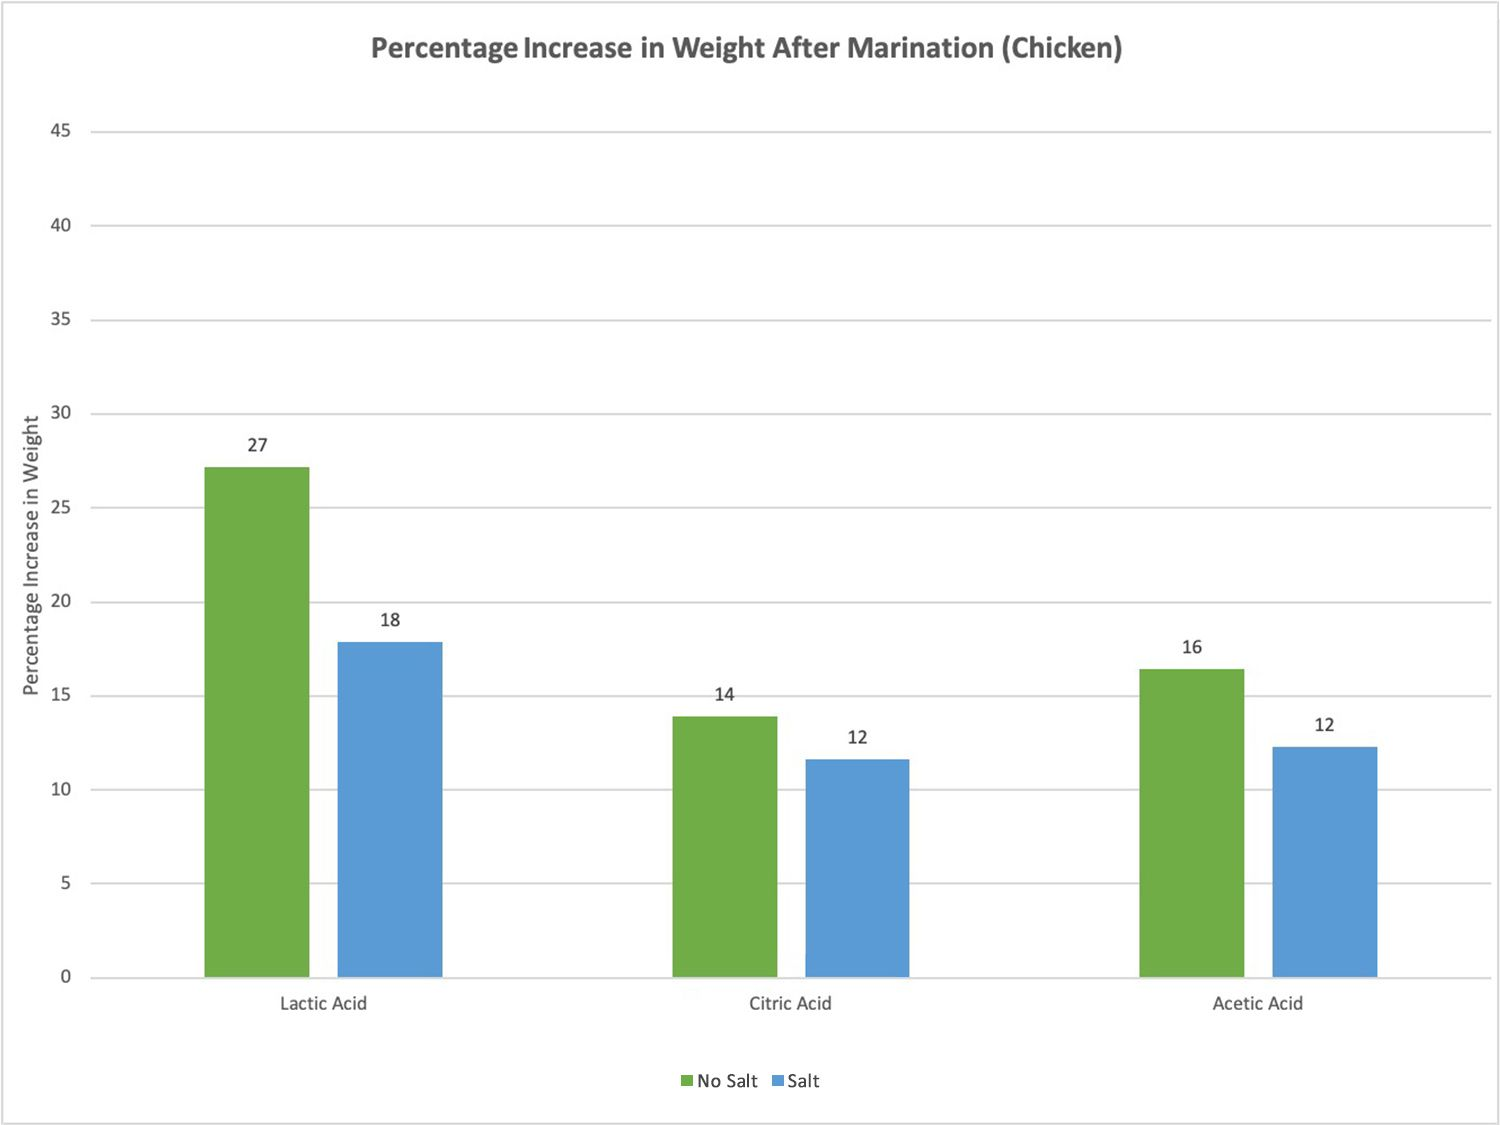 Graph showing percentage increase in weight of chicken after marination